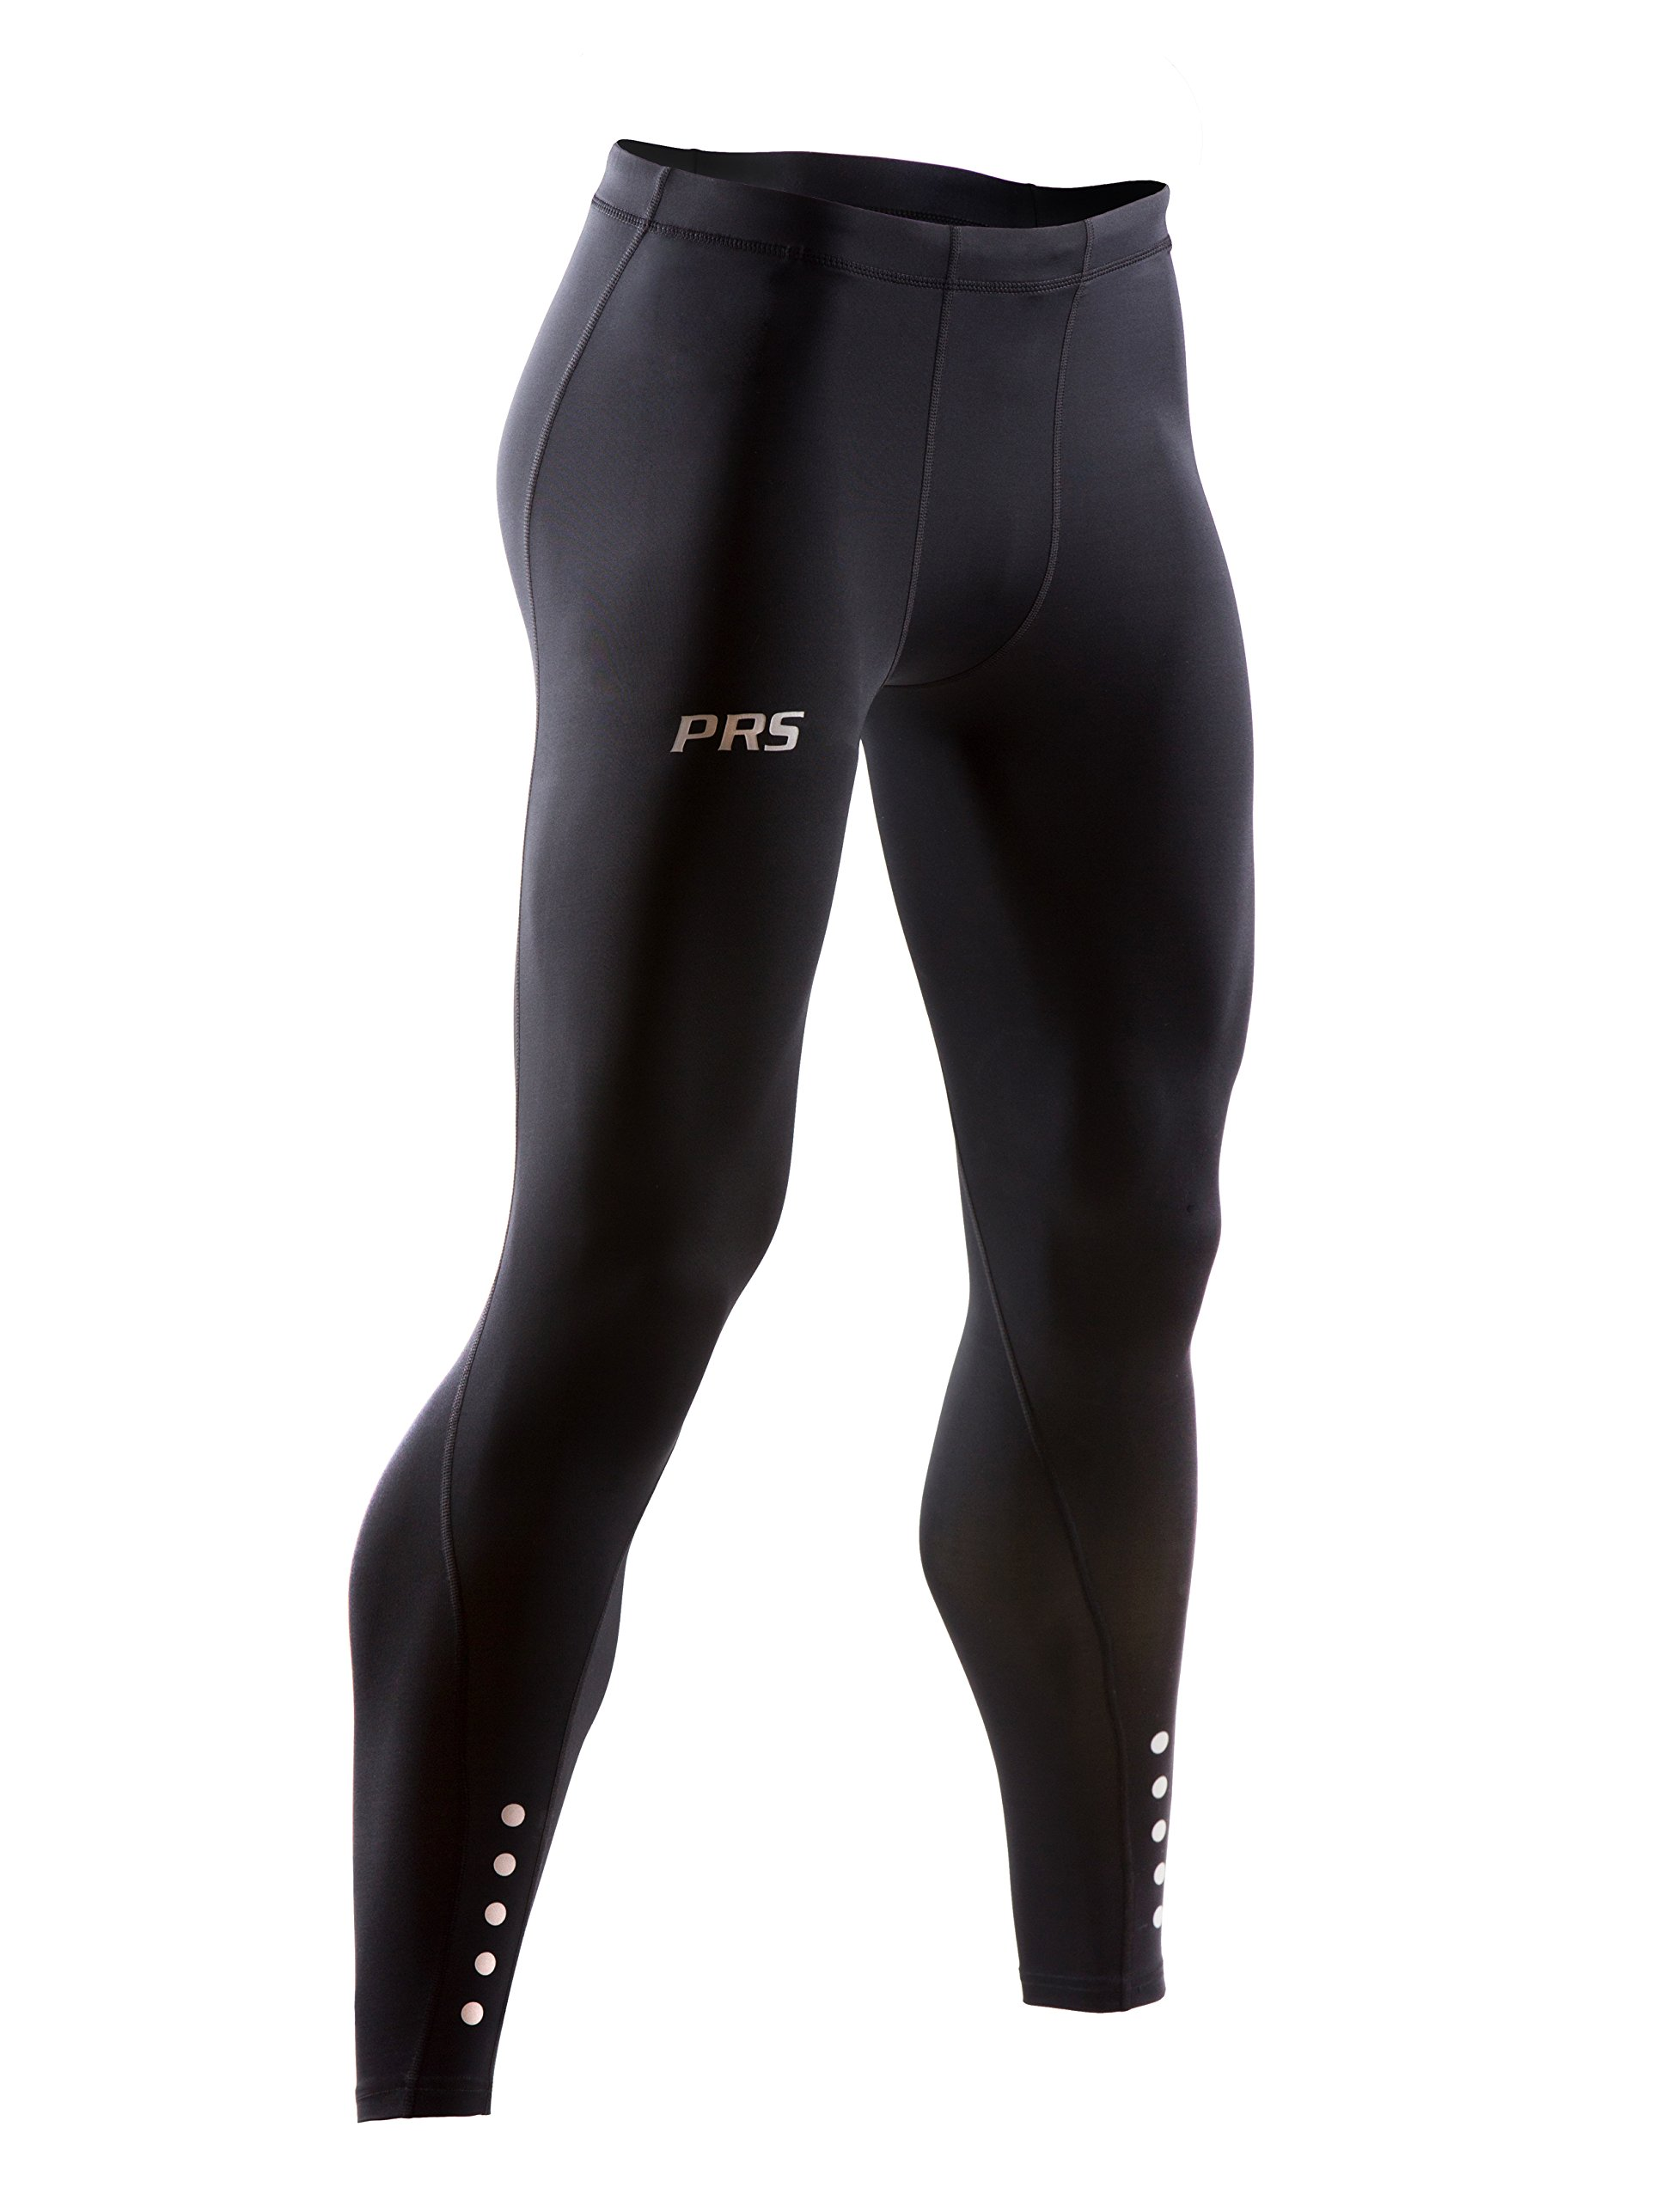 PRS Men's Perform+ Compression Tights for